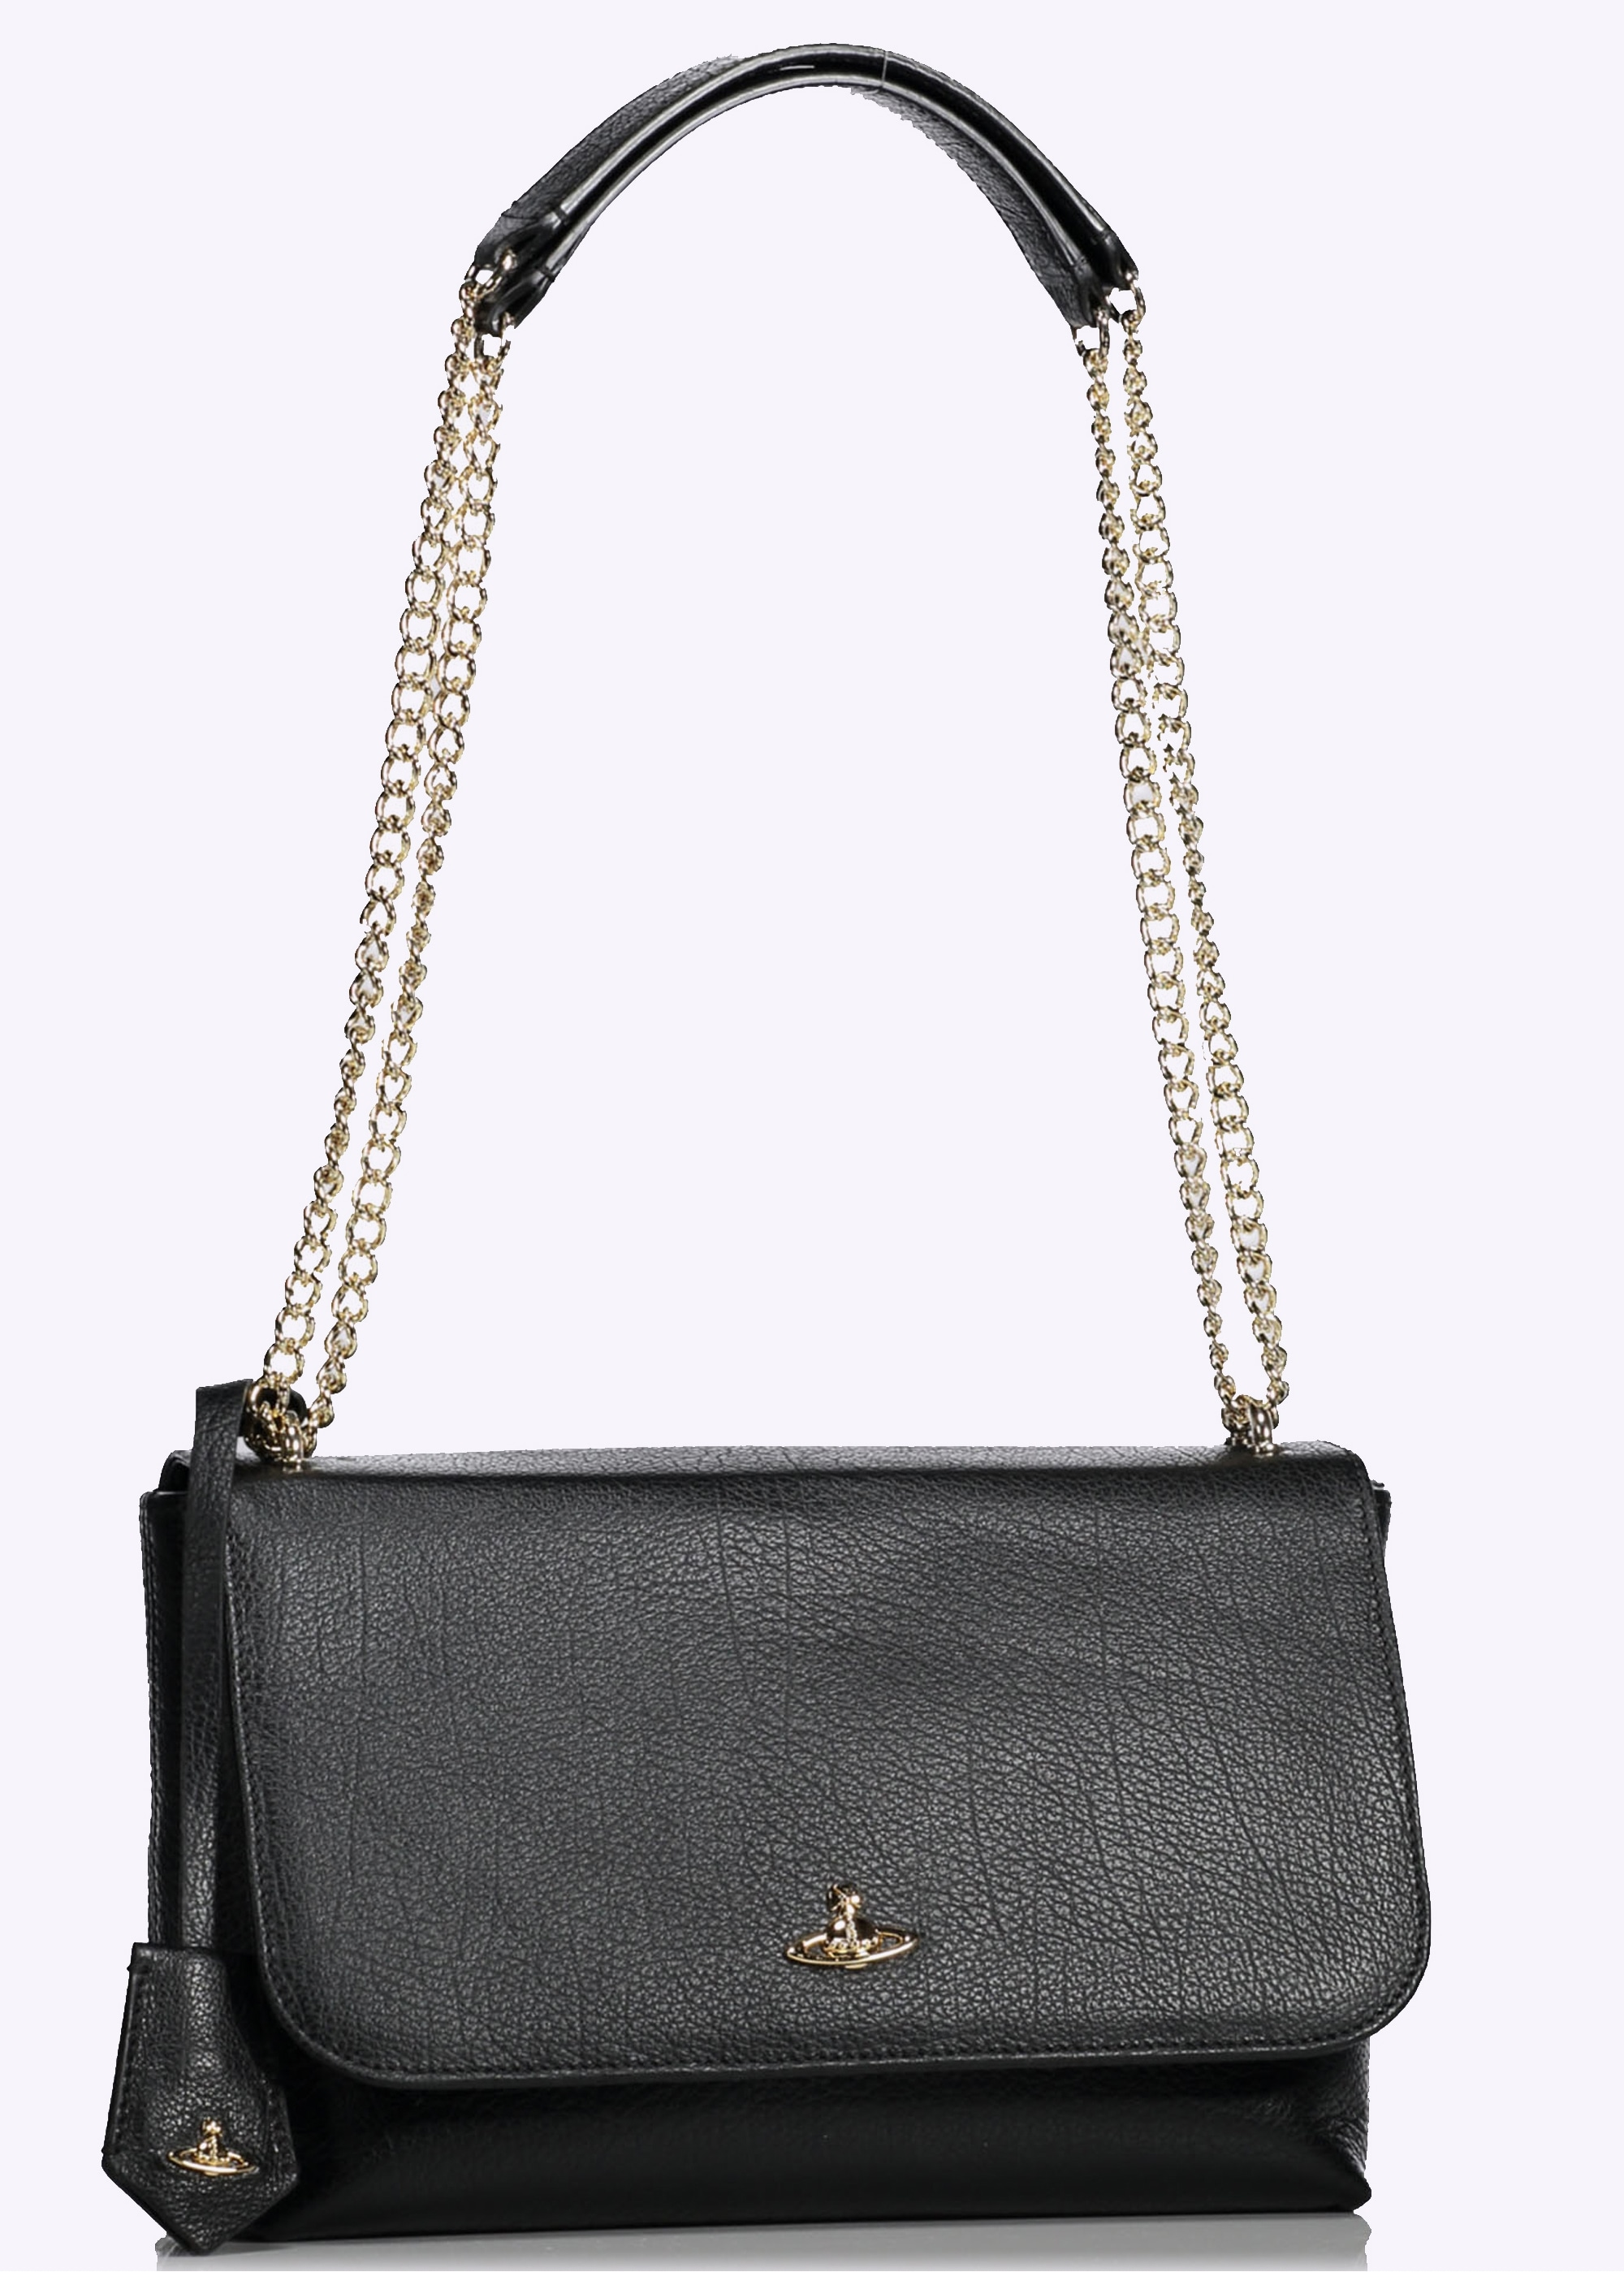 bf2401bb5a Vivienne Westwood Accessories Balmoral Bag With Flap - Black ...